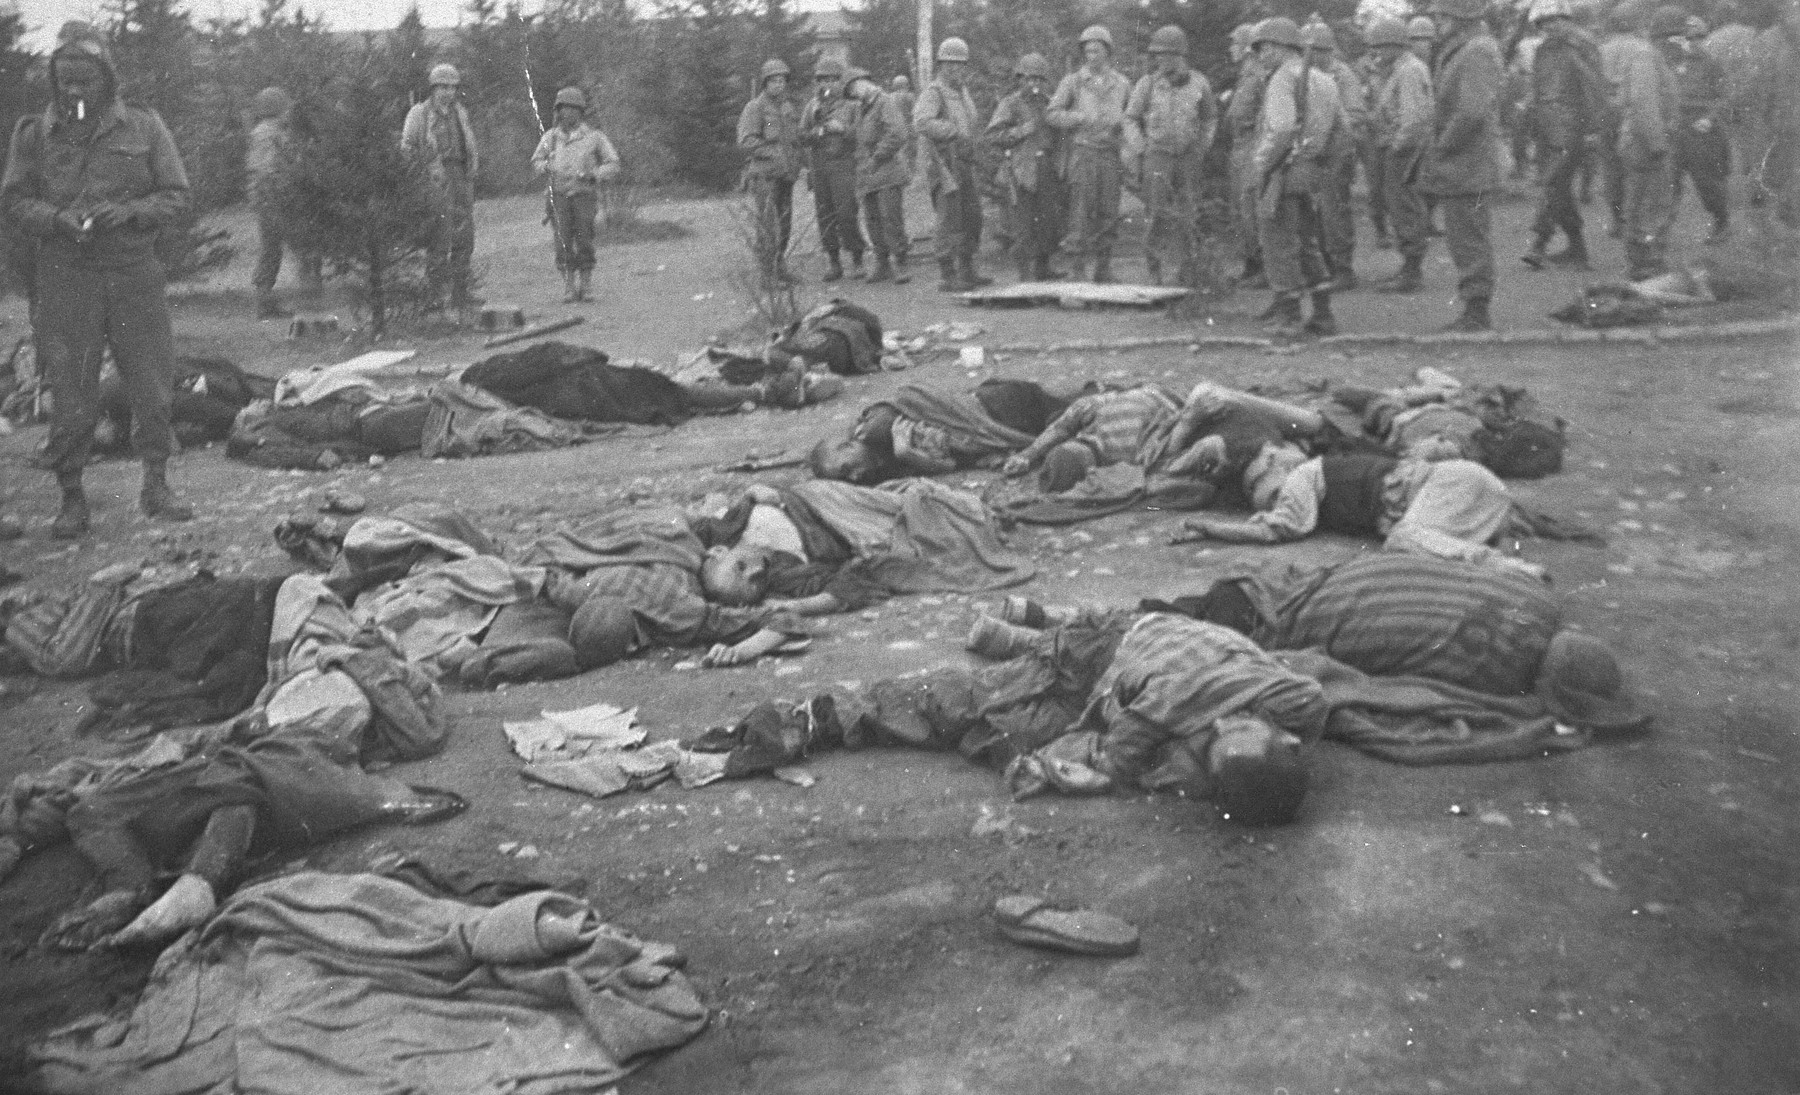 American soldiers view the corpses of prisoners that are strewn over the ground during an inspection of the newly liberated Ohrdruf concentration camp.